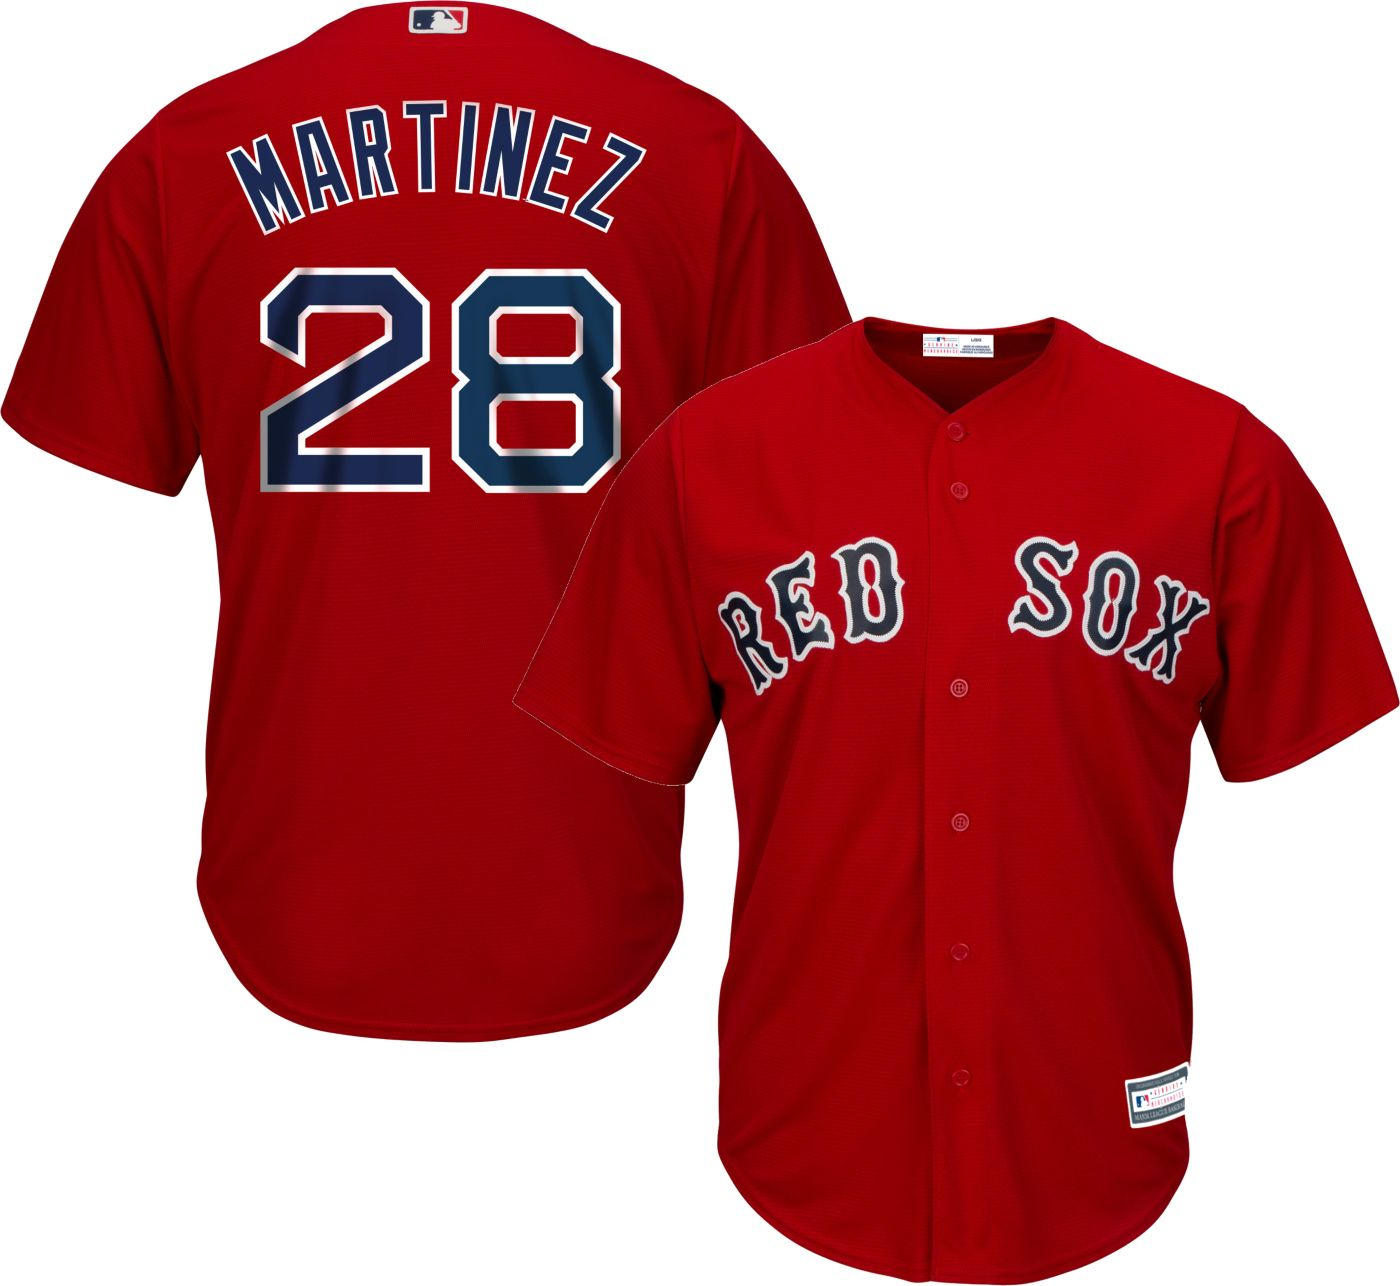 Youth Replica Boston Red Sox J.D. Martinez #28 Alternate Red Jersey